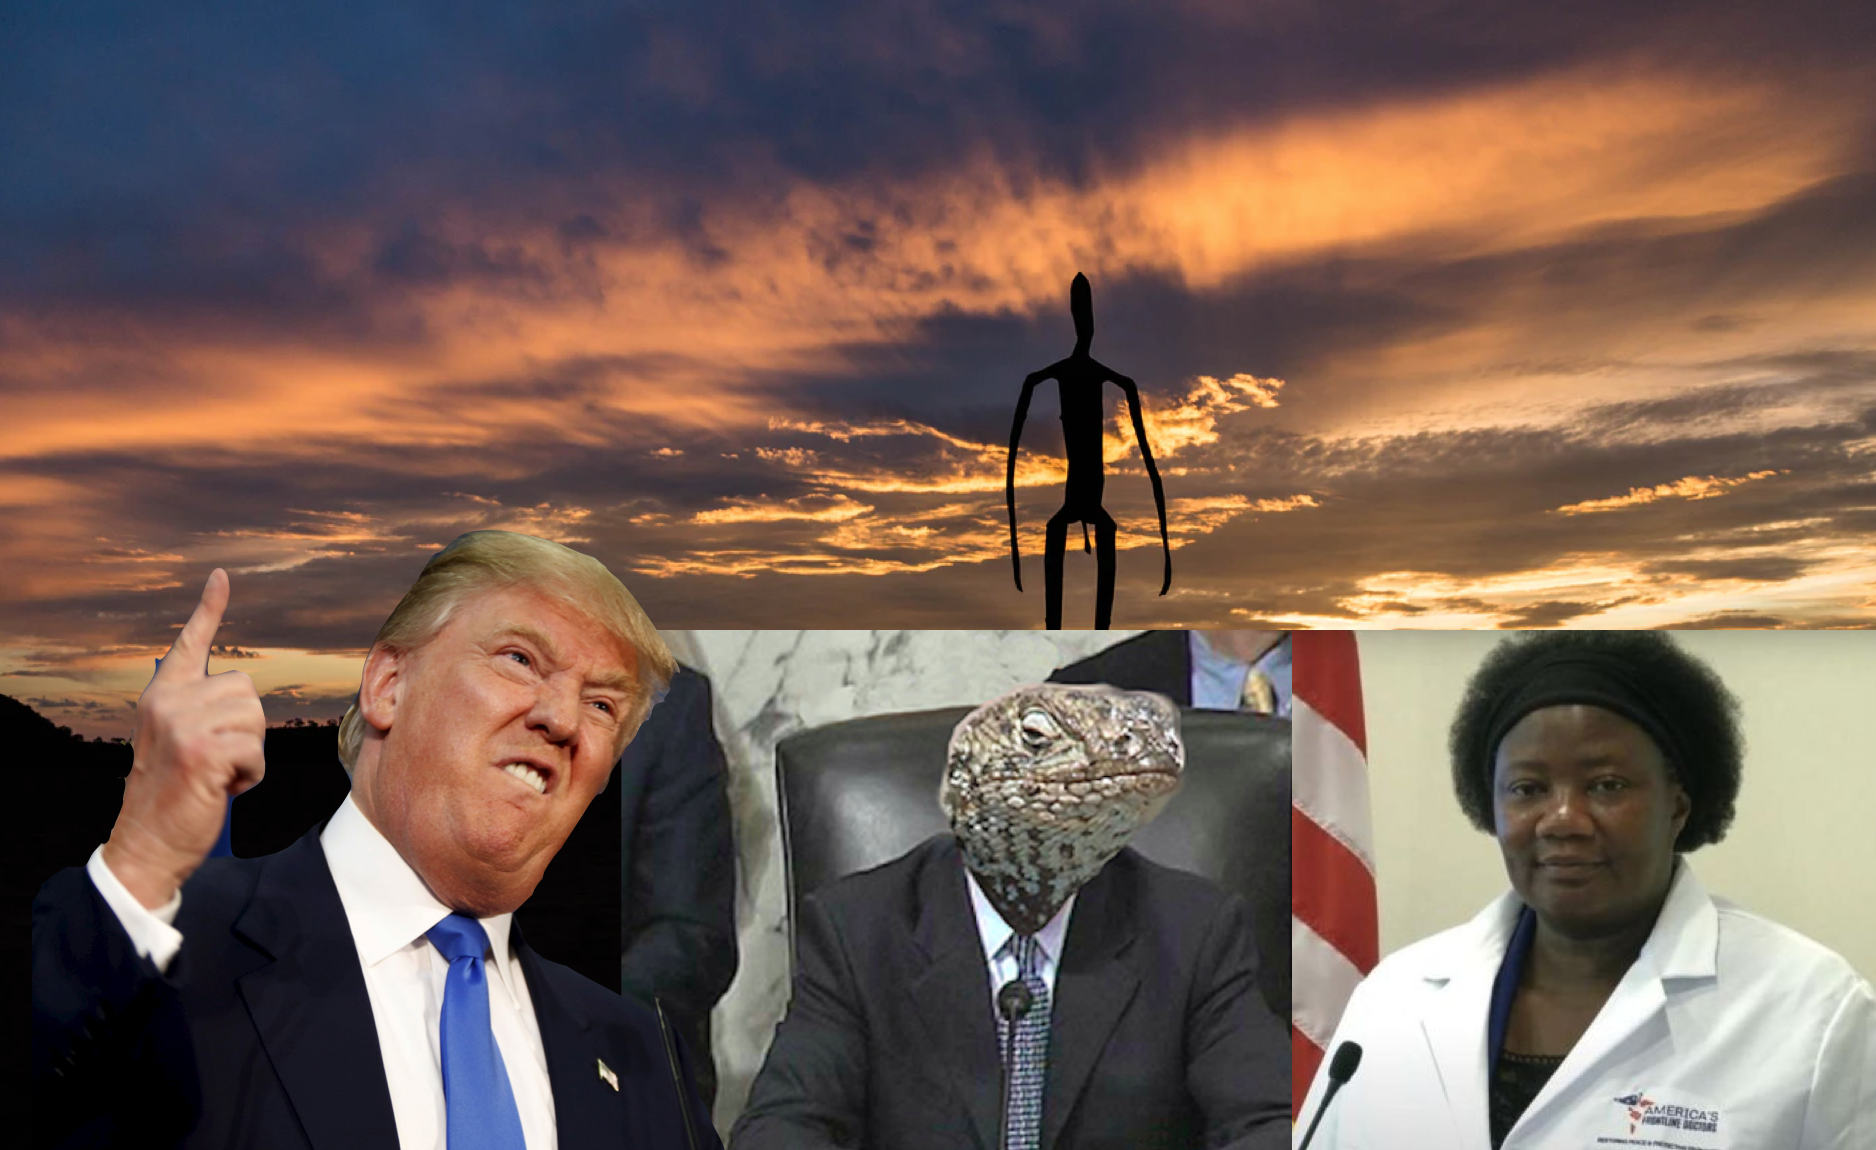 Trump Promotes Pentecostal Doctor Who Warns for Alien DNA, Demon Sex and Reptilian Politicians